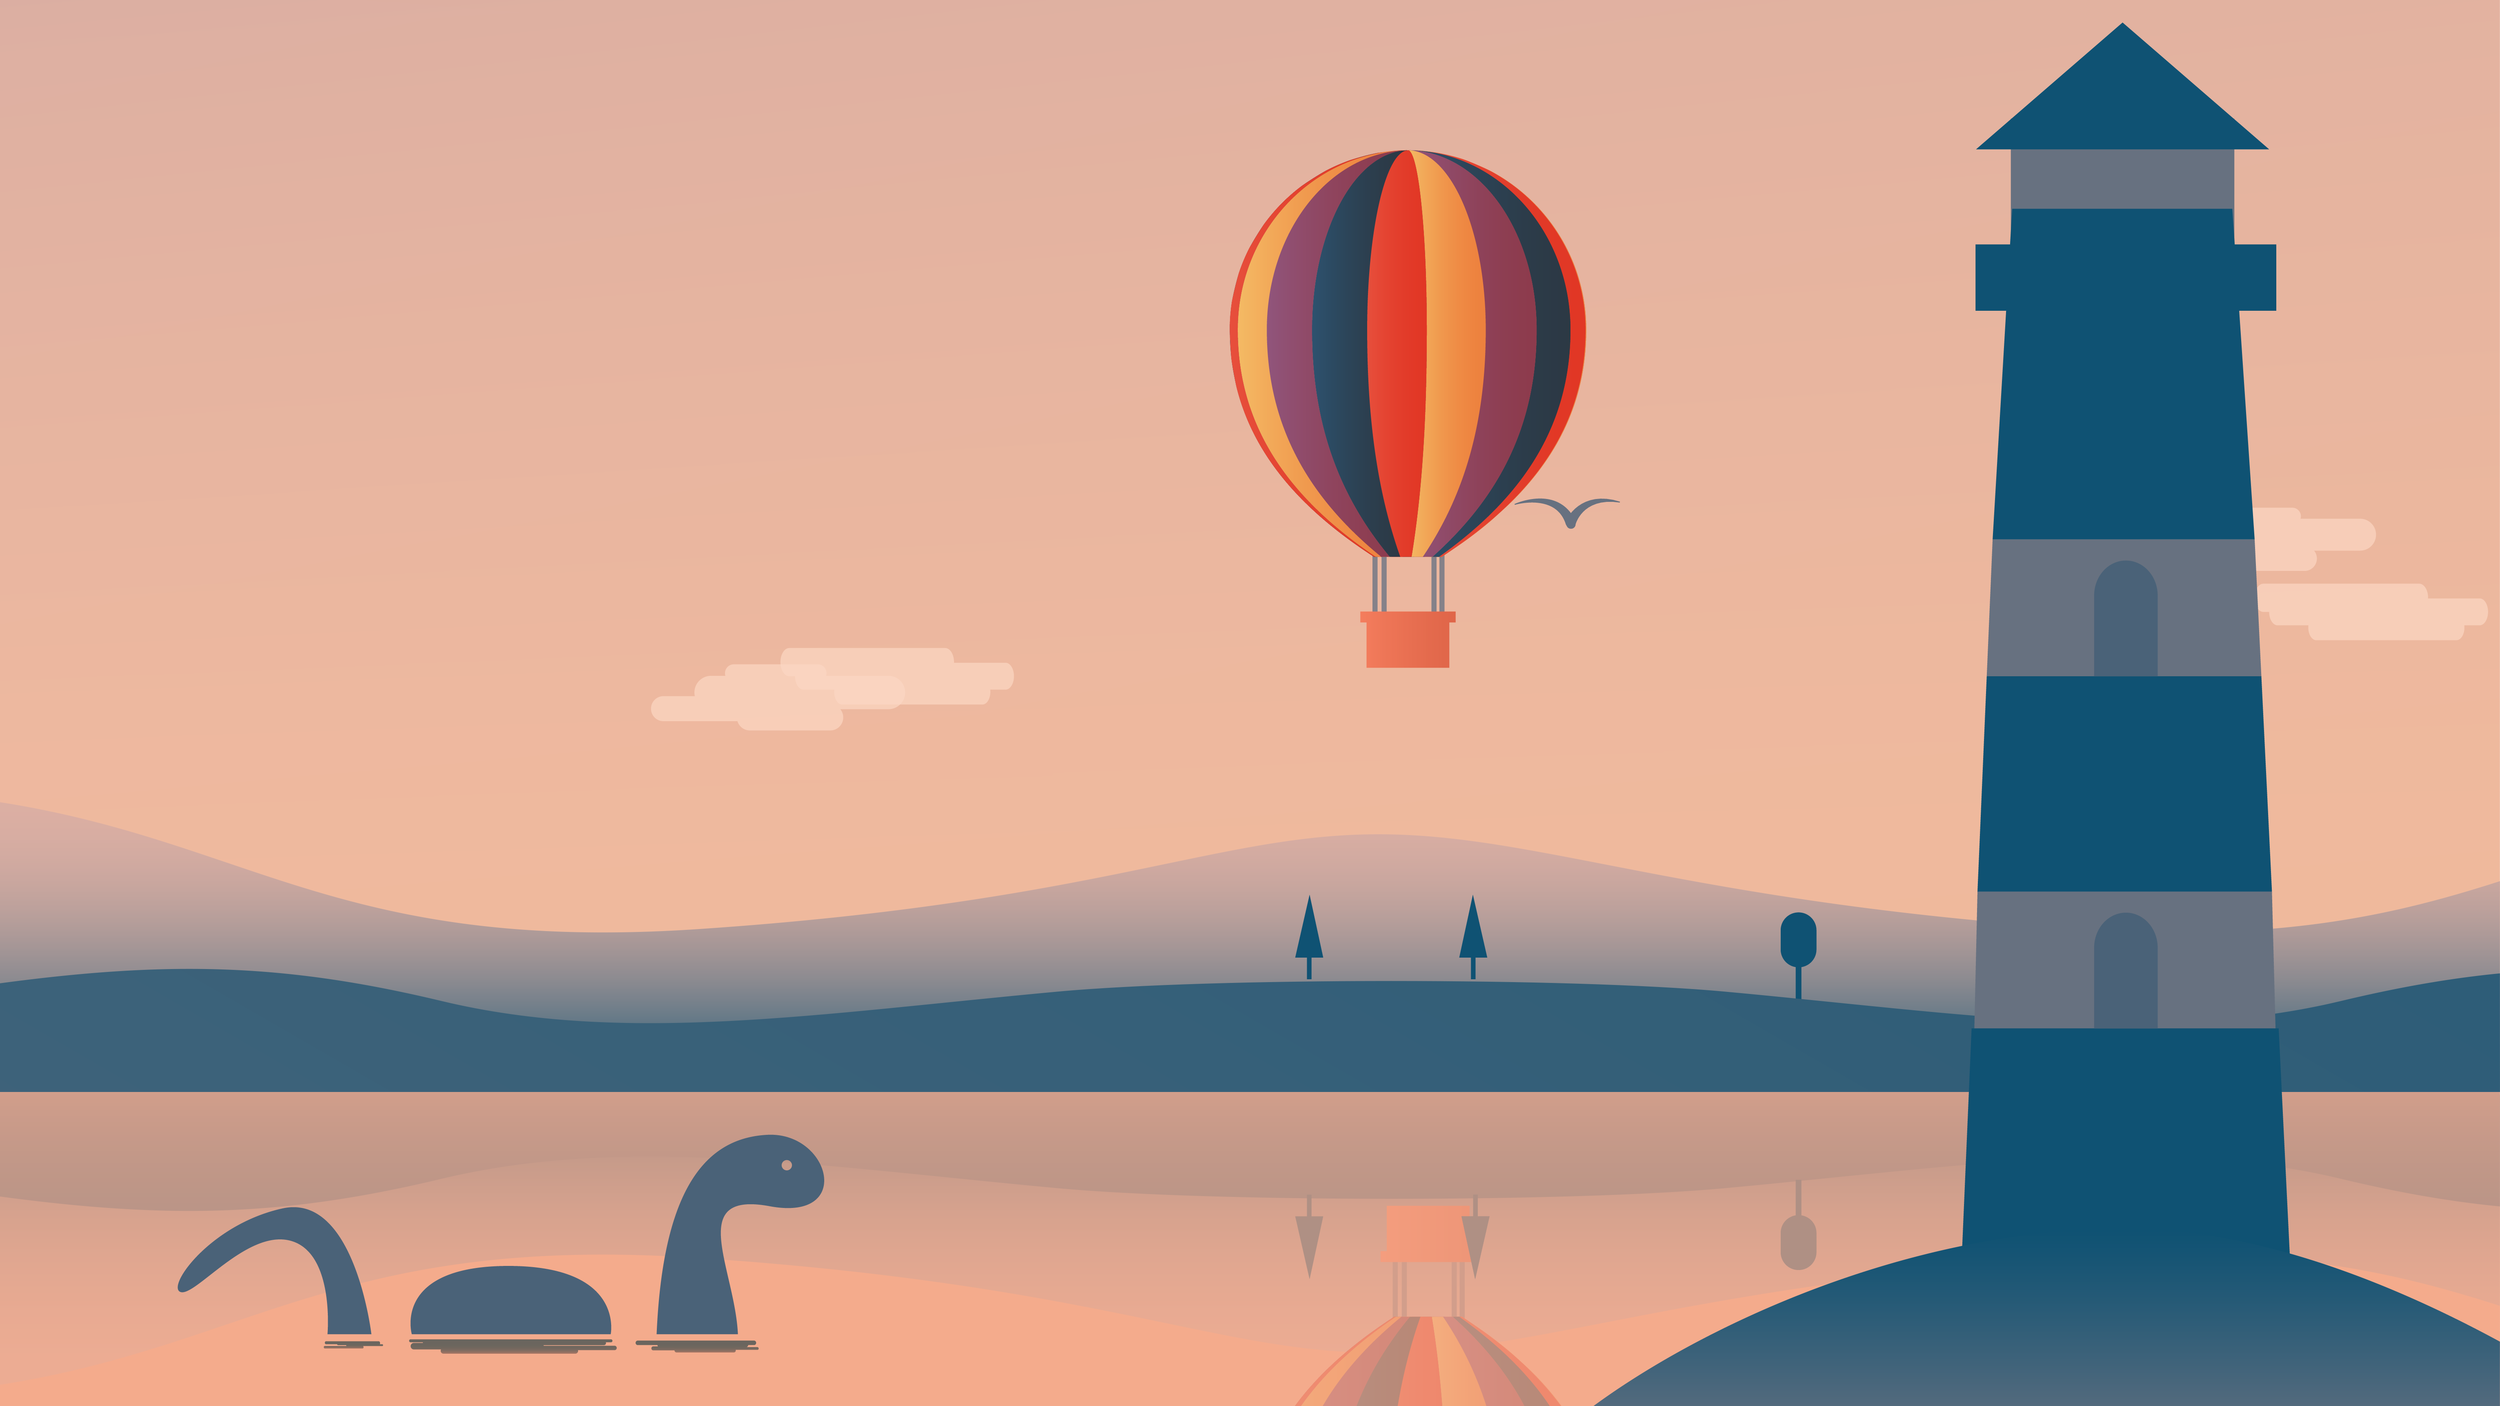 Cropped View of Scenic Illustration